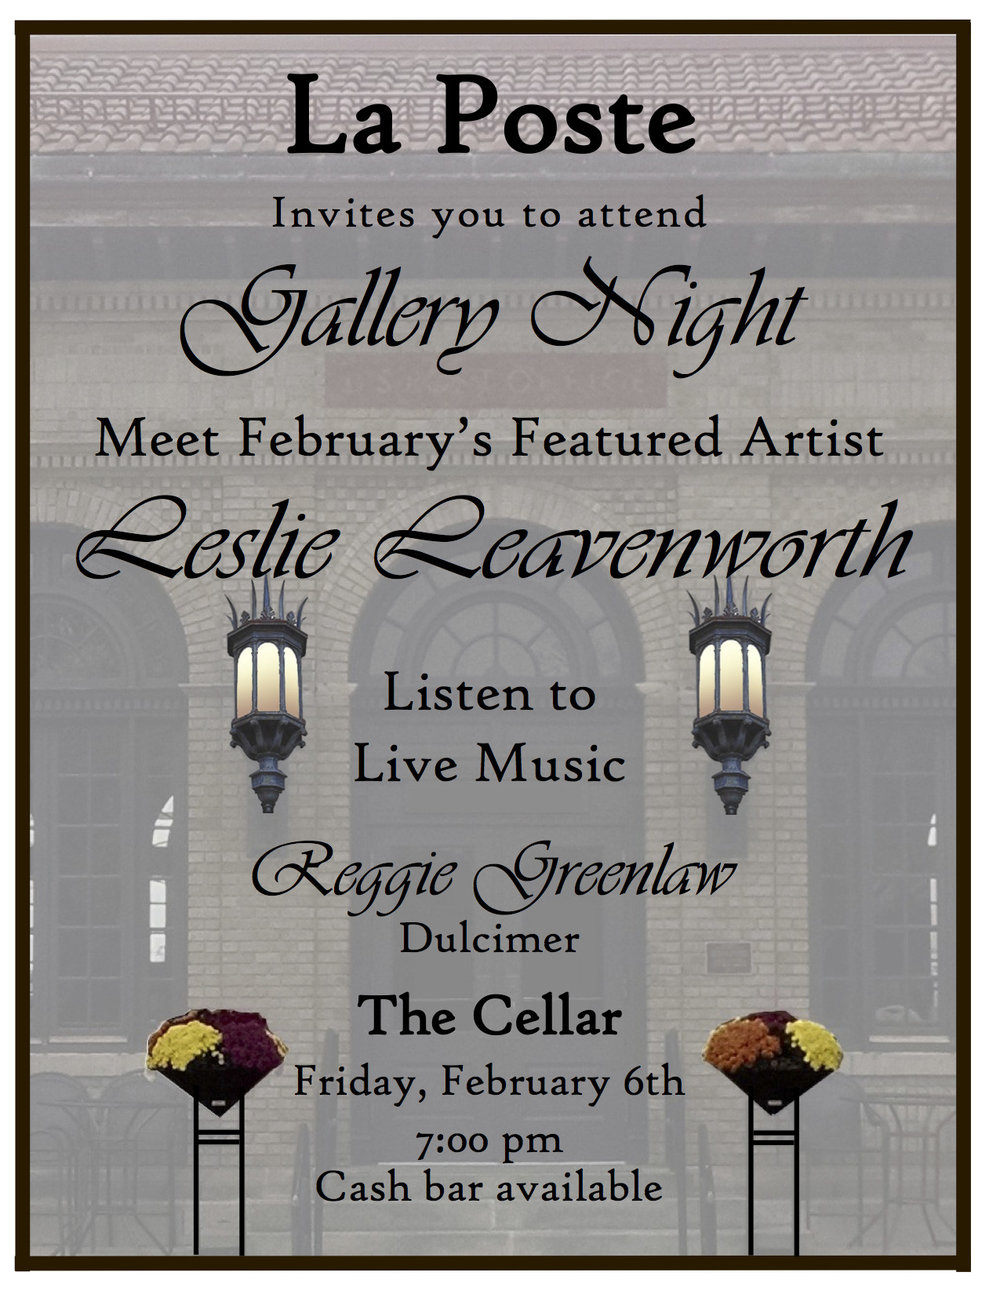 Join us this Friday, Feb. 6th, at 7:00 in the Cellar of La Poste for Gallery Night with artist Leslie Leavenworth and dulcimer music of Reggie Greenlaw.